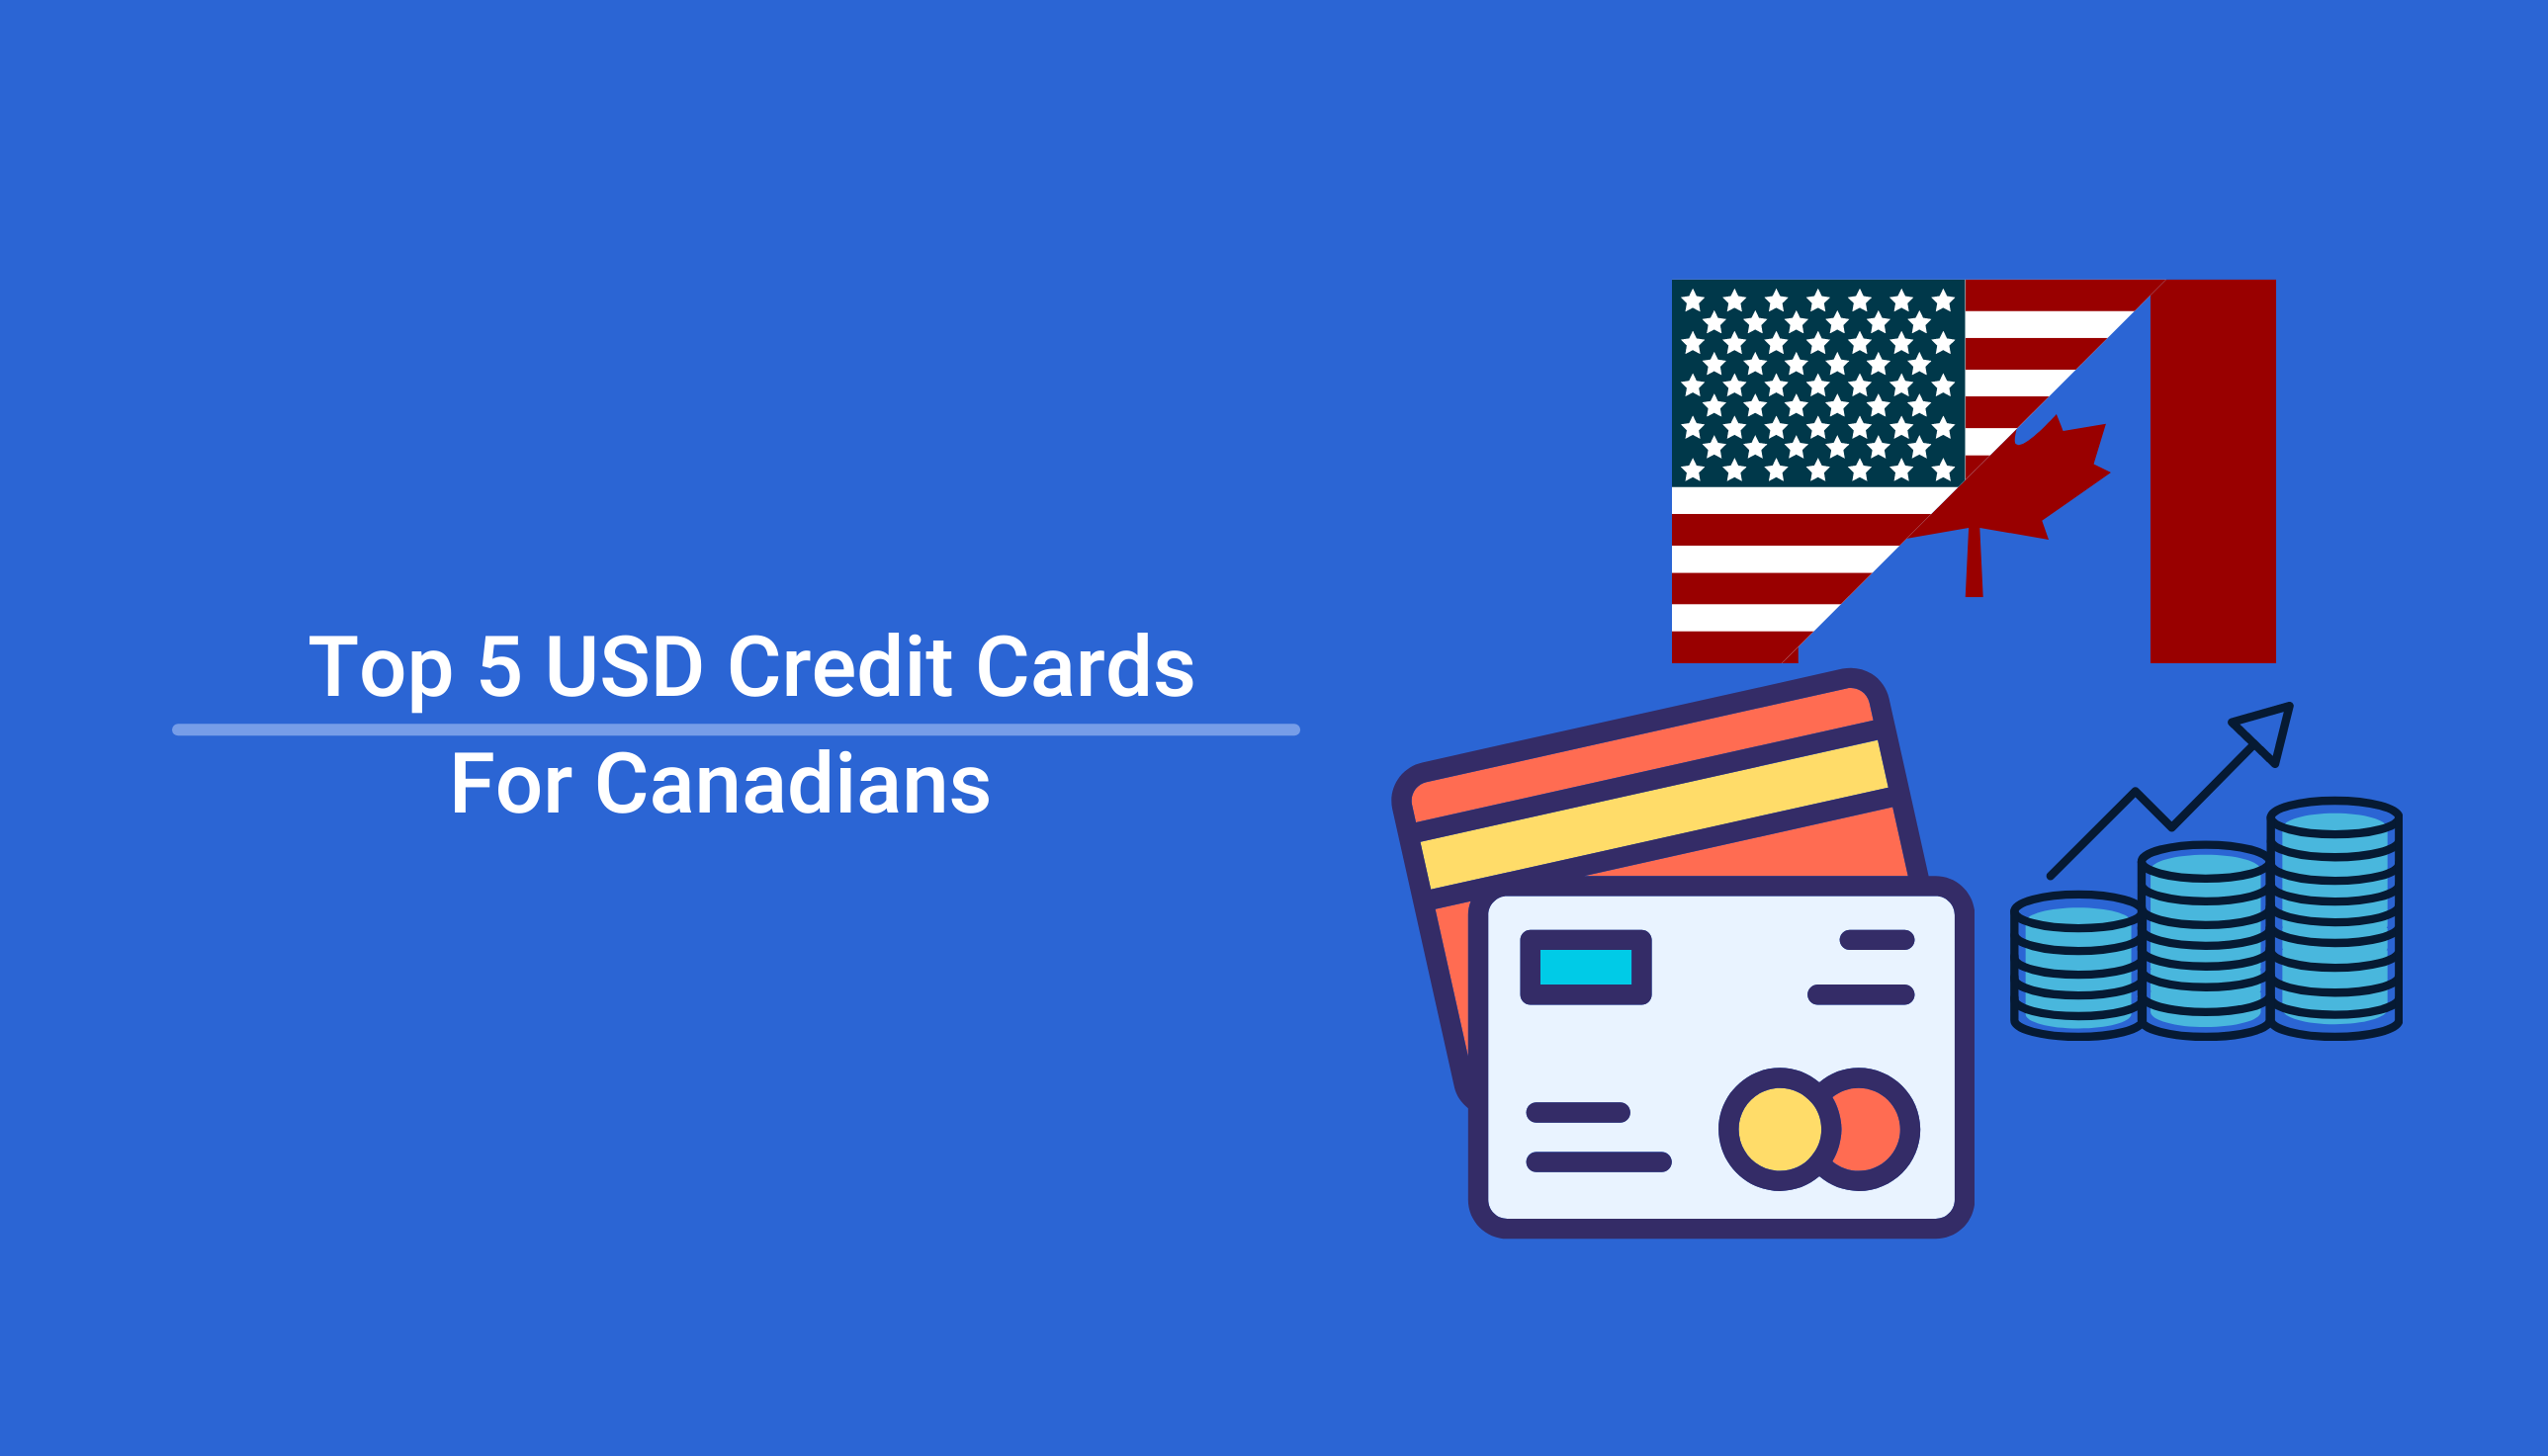 The 5 Best USD Credit Cards for Canadians in 2021